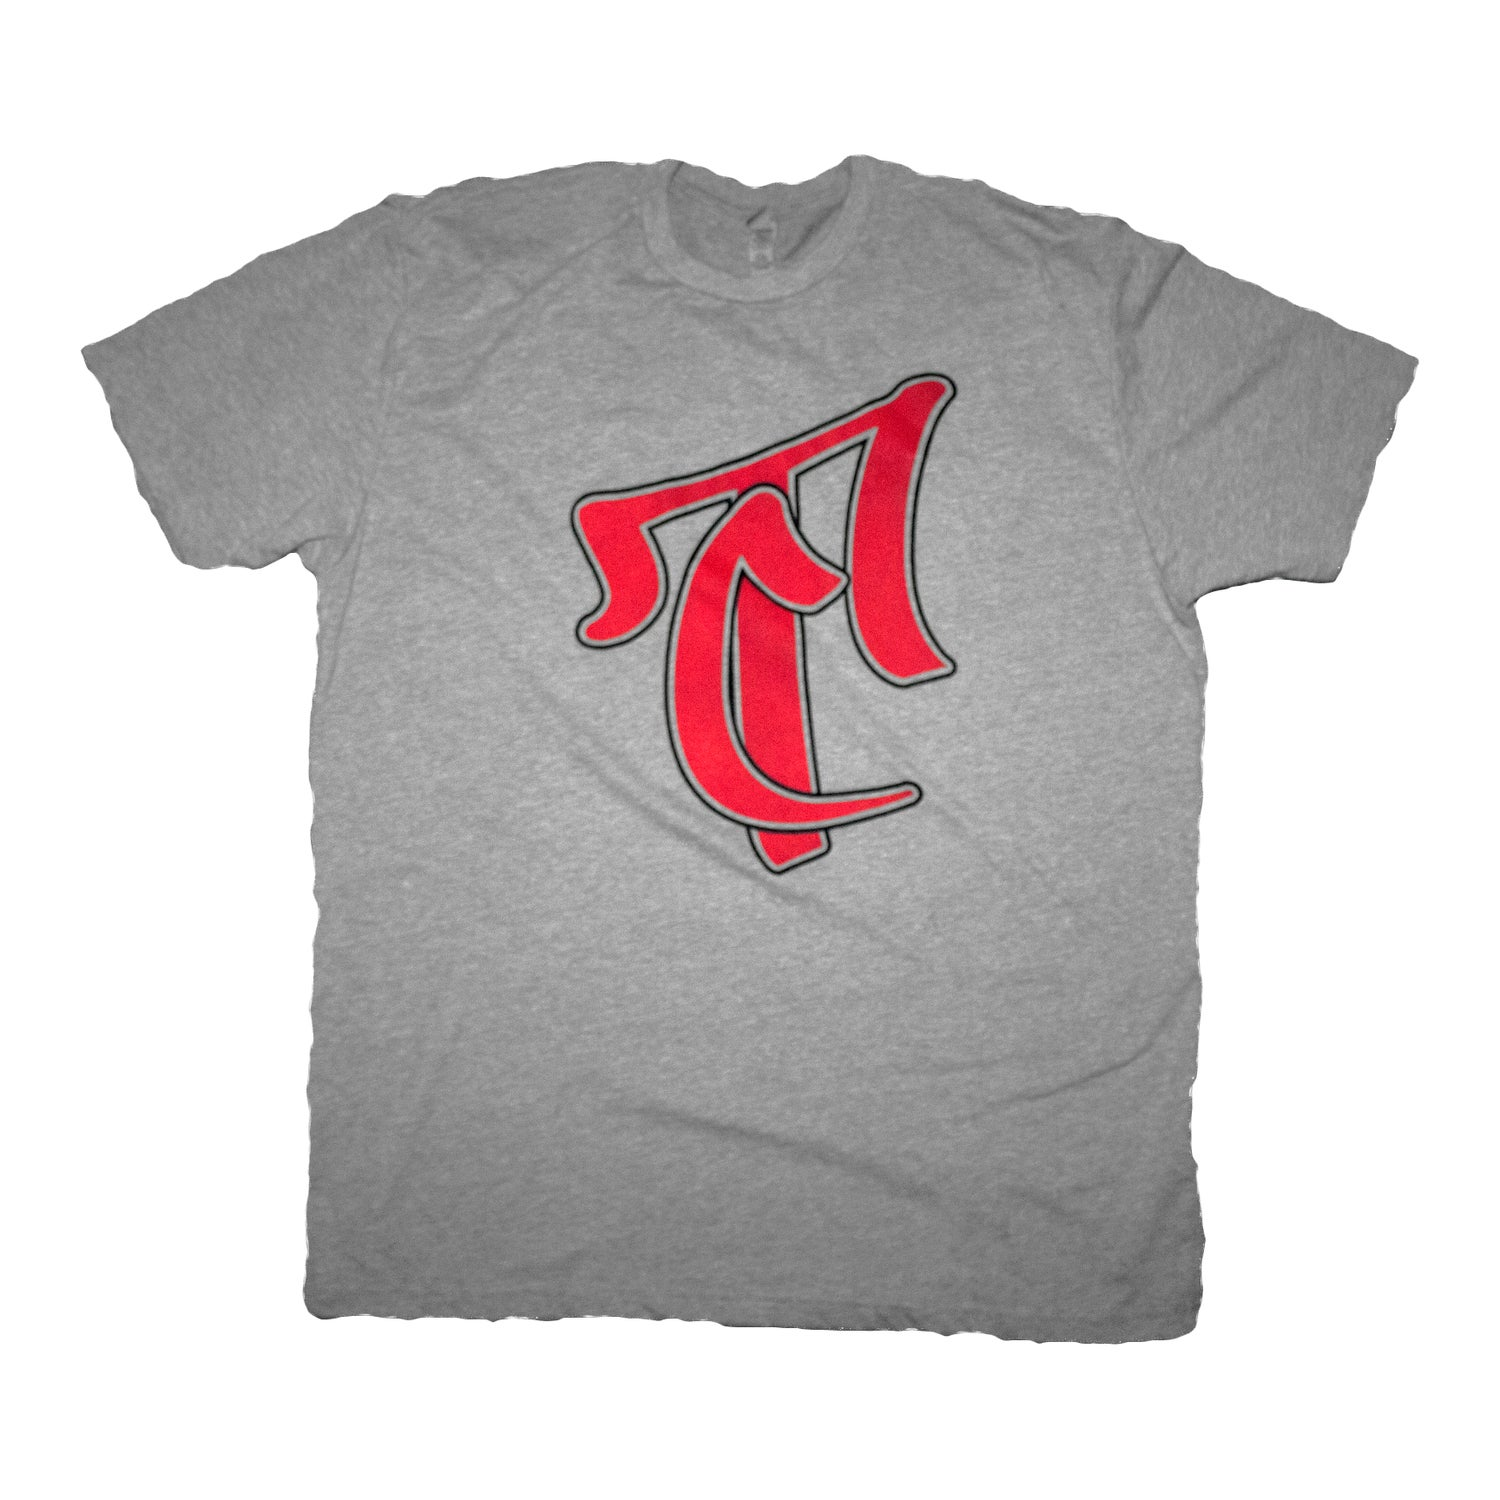 Image of The TC Logo Tee in Gray/Red